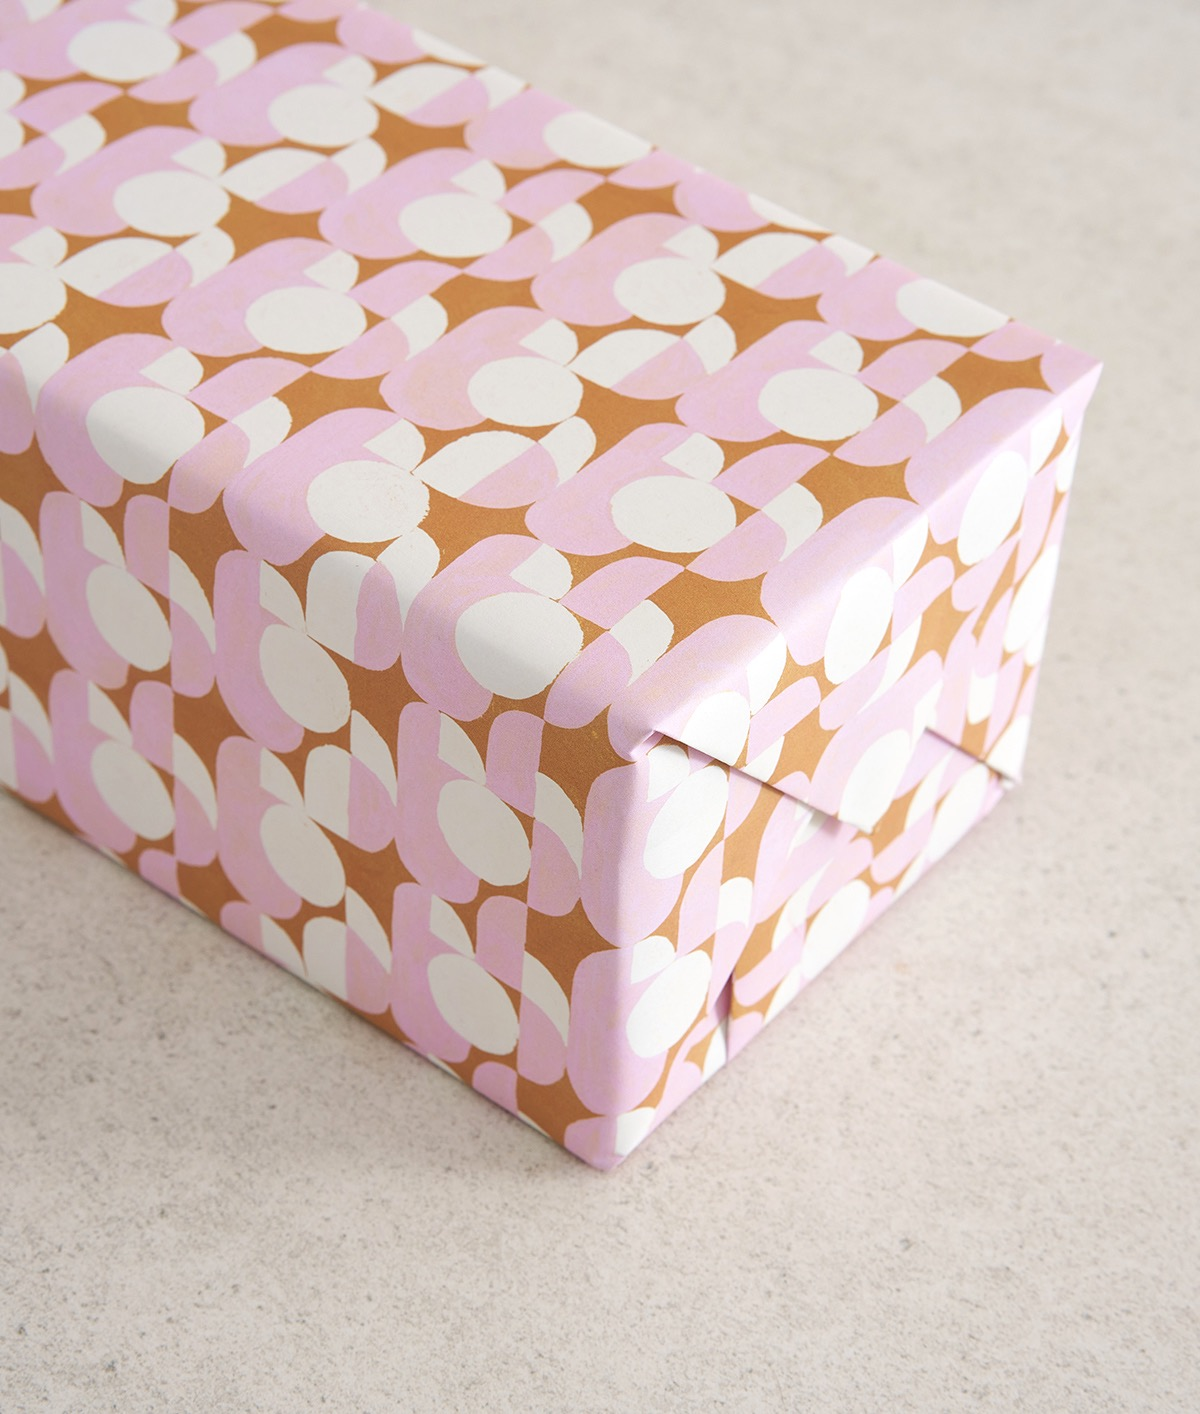 Tiles wrapping paper sheet